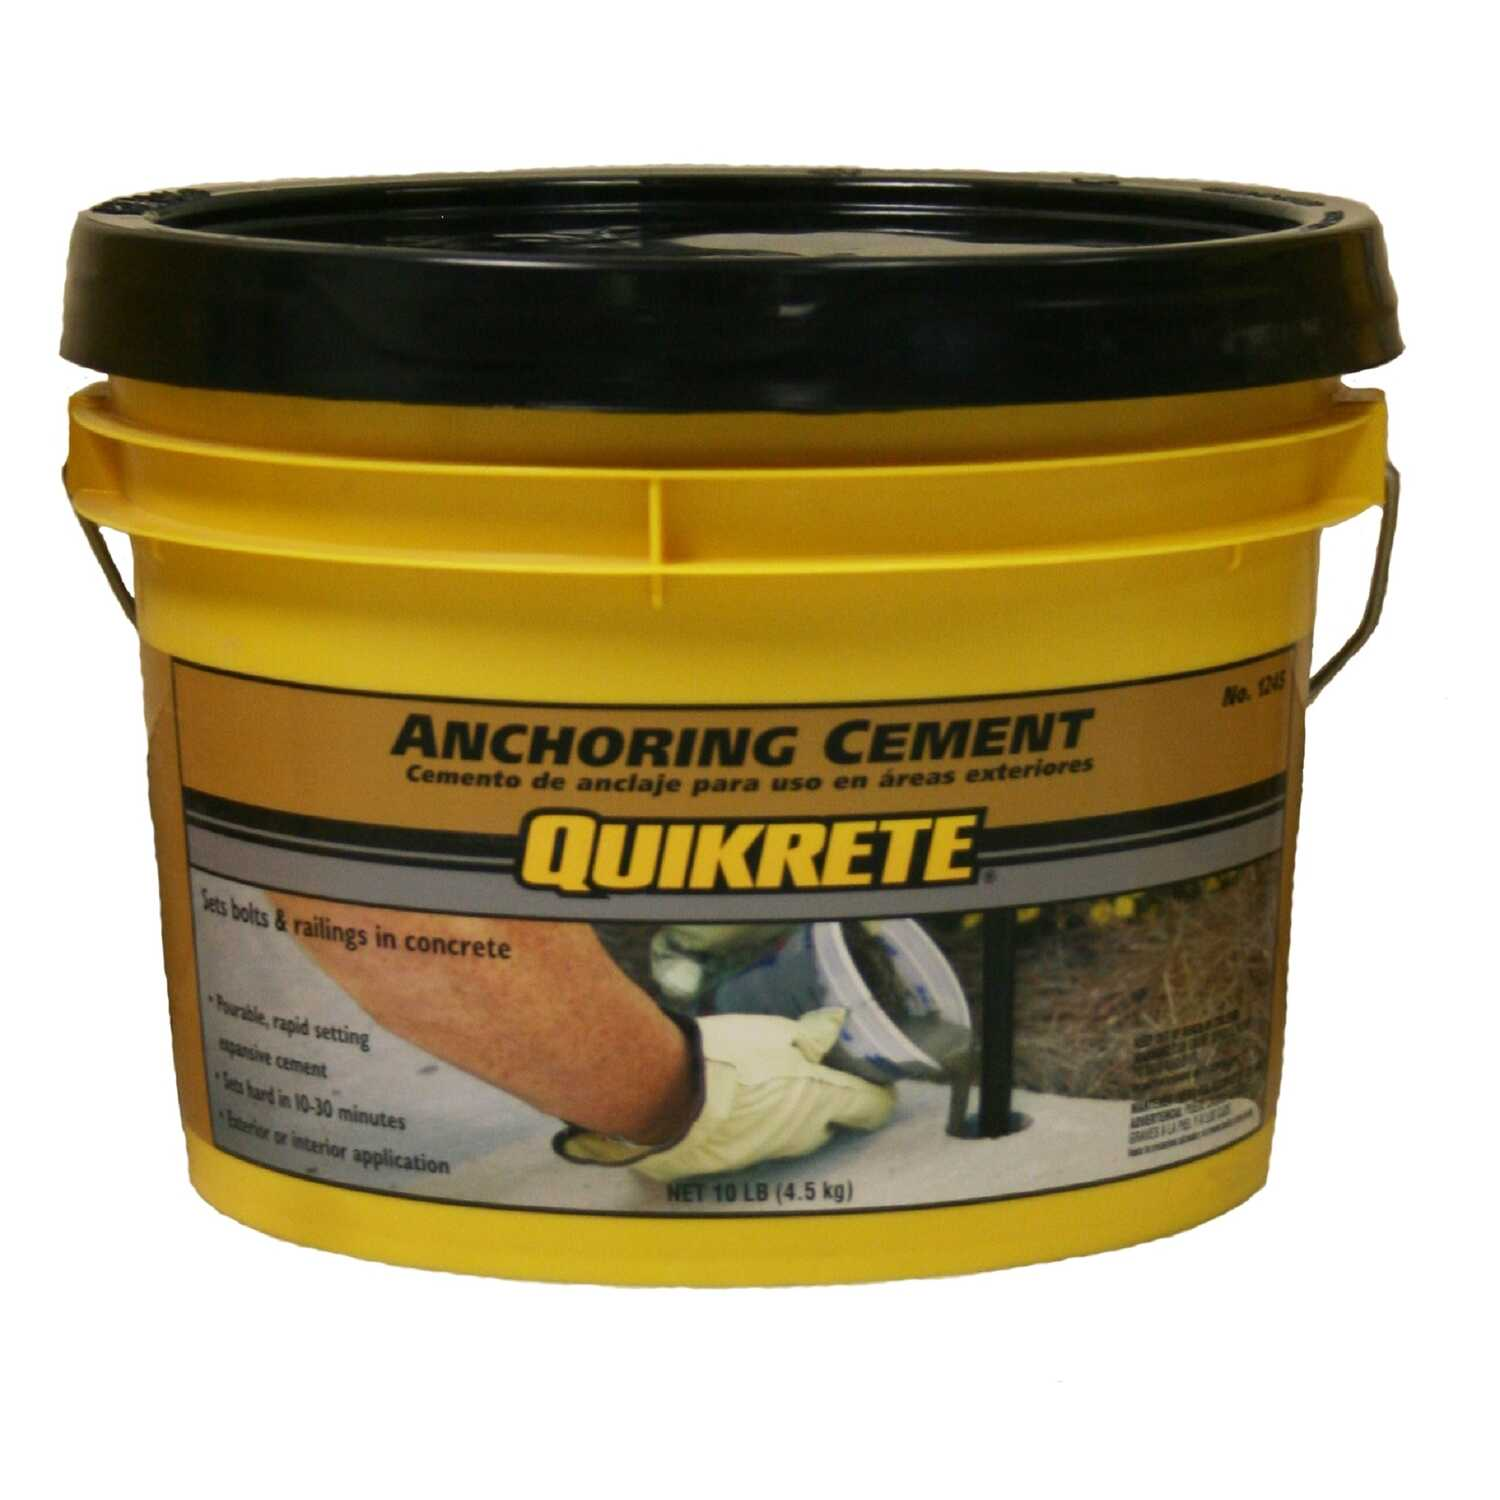 Quikrete  Anchoring Cement  10 lb.